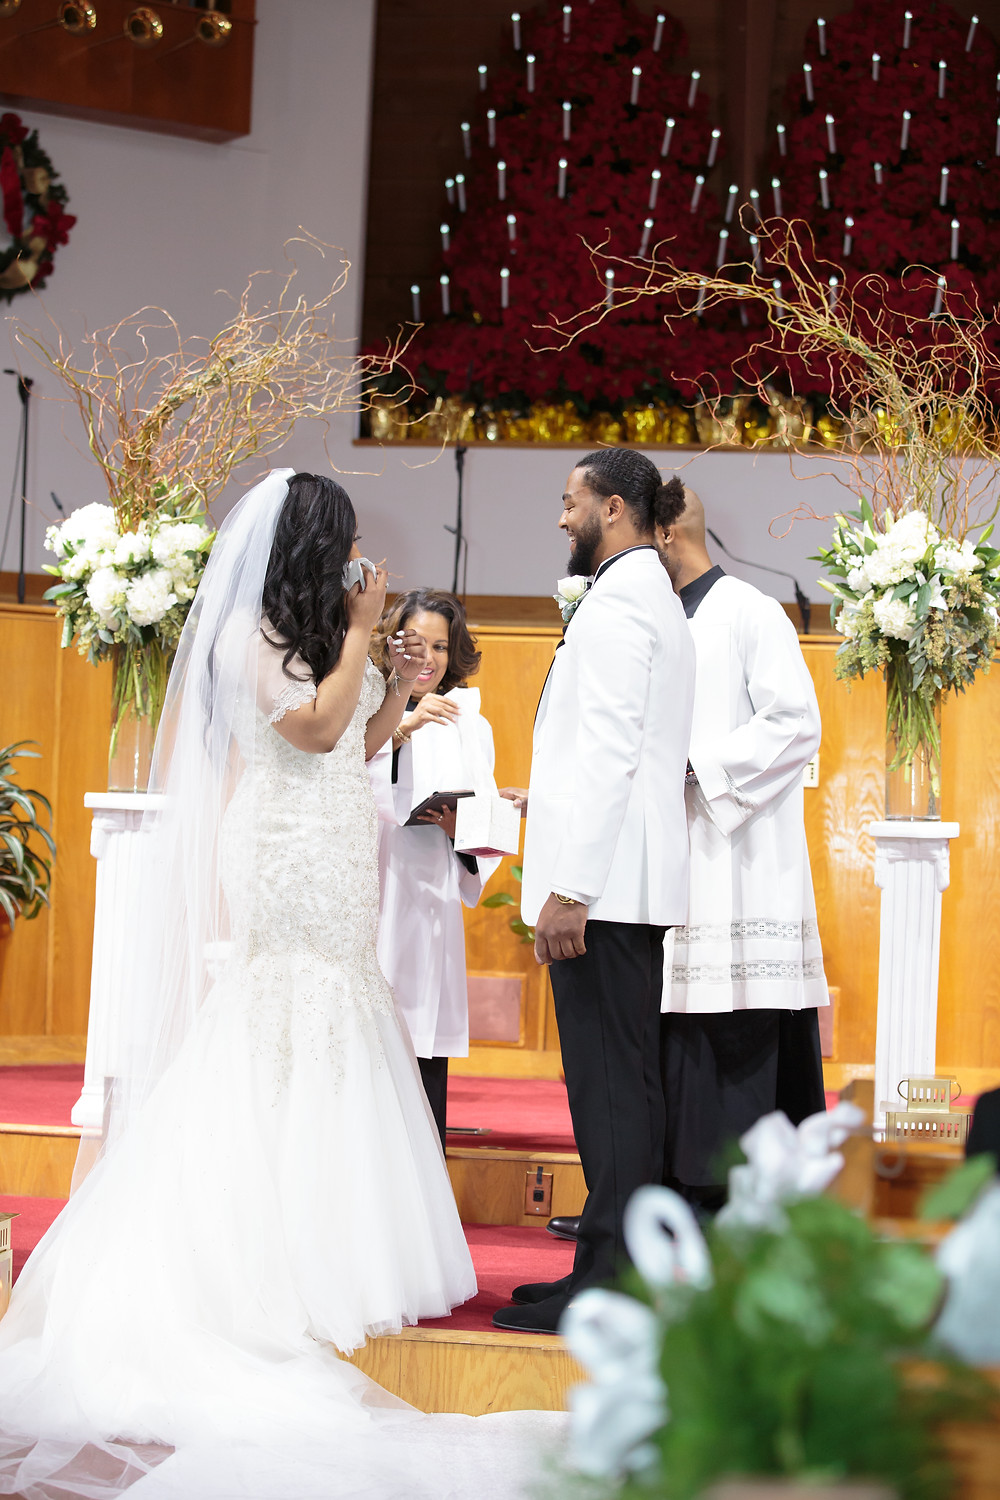 The bride sheds some tears during the vows portion of the wedding ceremony at the Alfred Street Baptist Church in Alexandria Virginia.